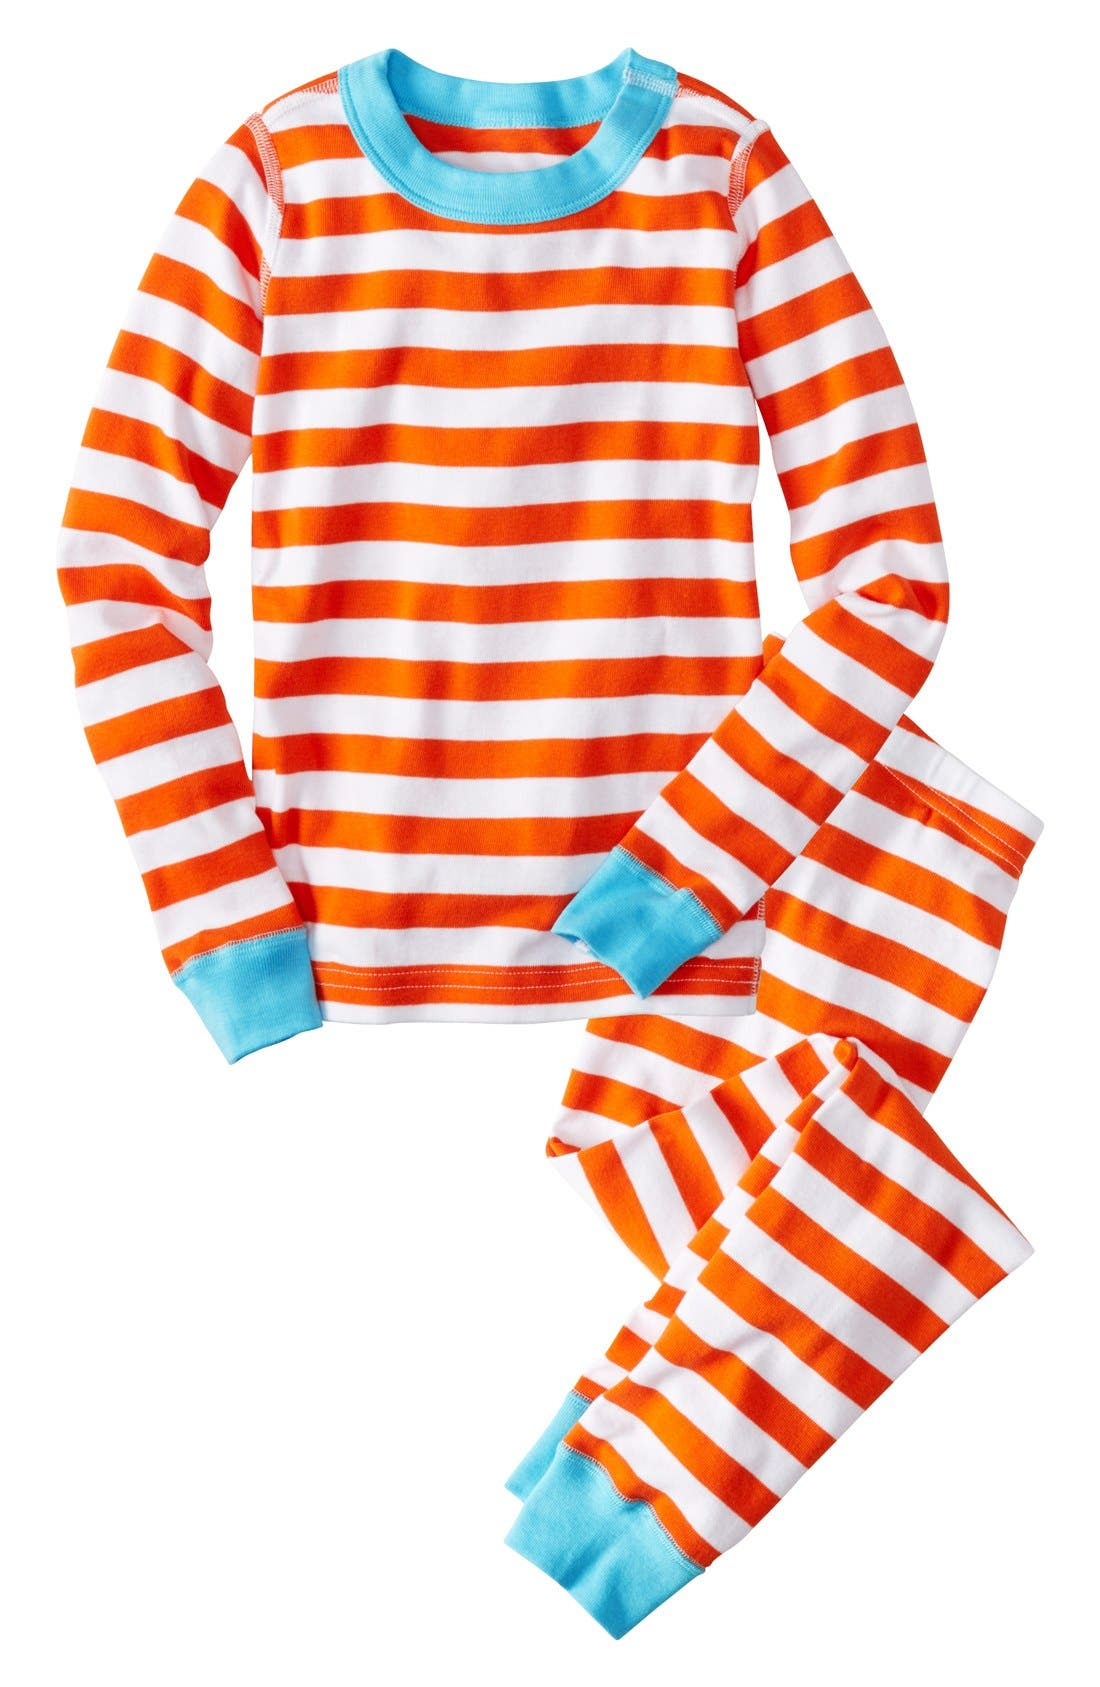 Alternate Image 1 Selected - Hanna Andersson Two Piece Fitted Organic Cotton Pajamas (Baby & Toddler)